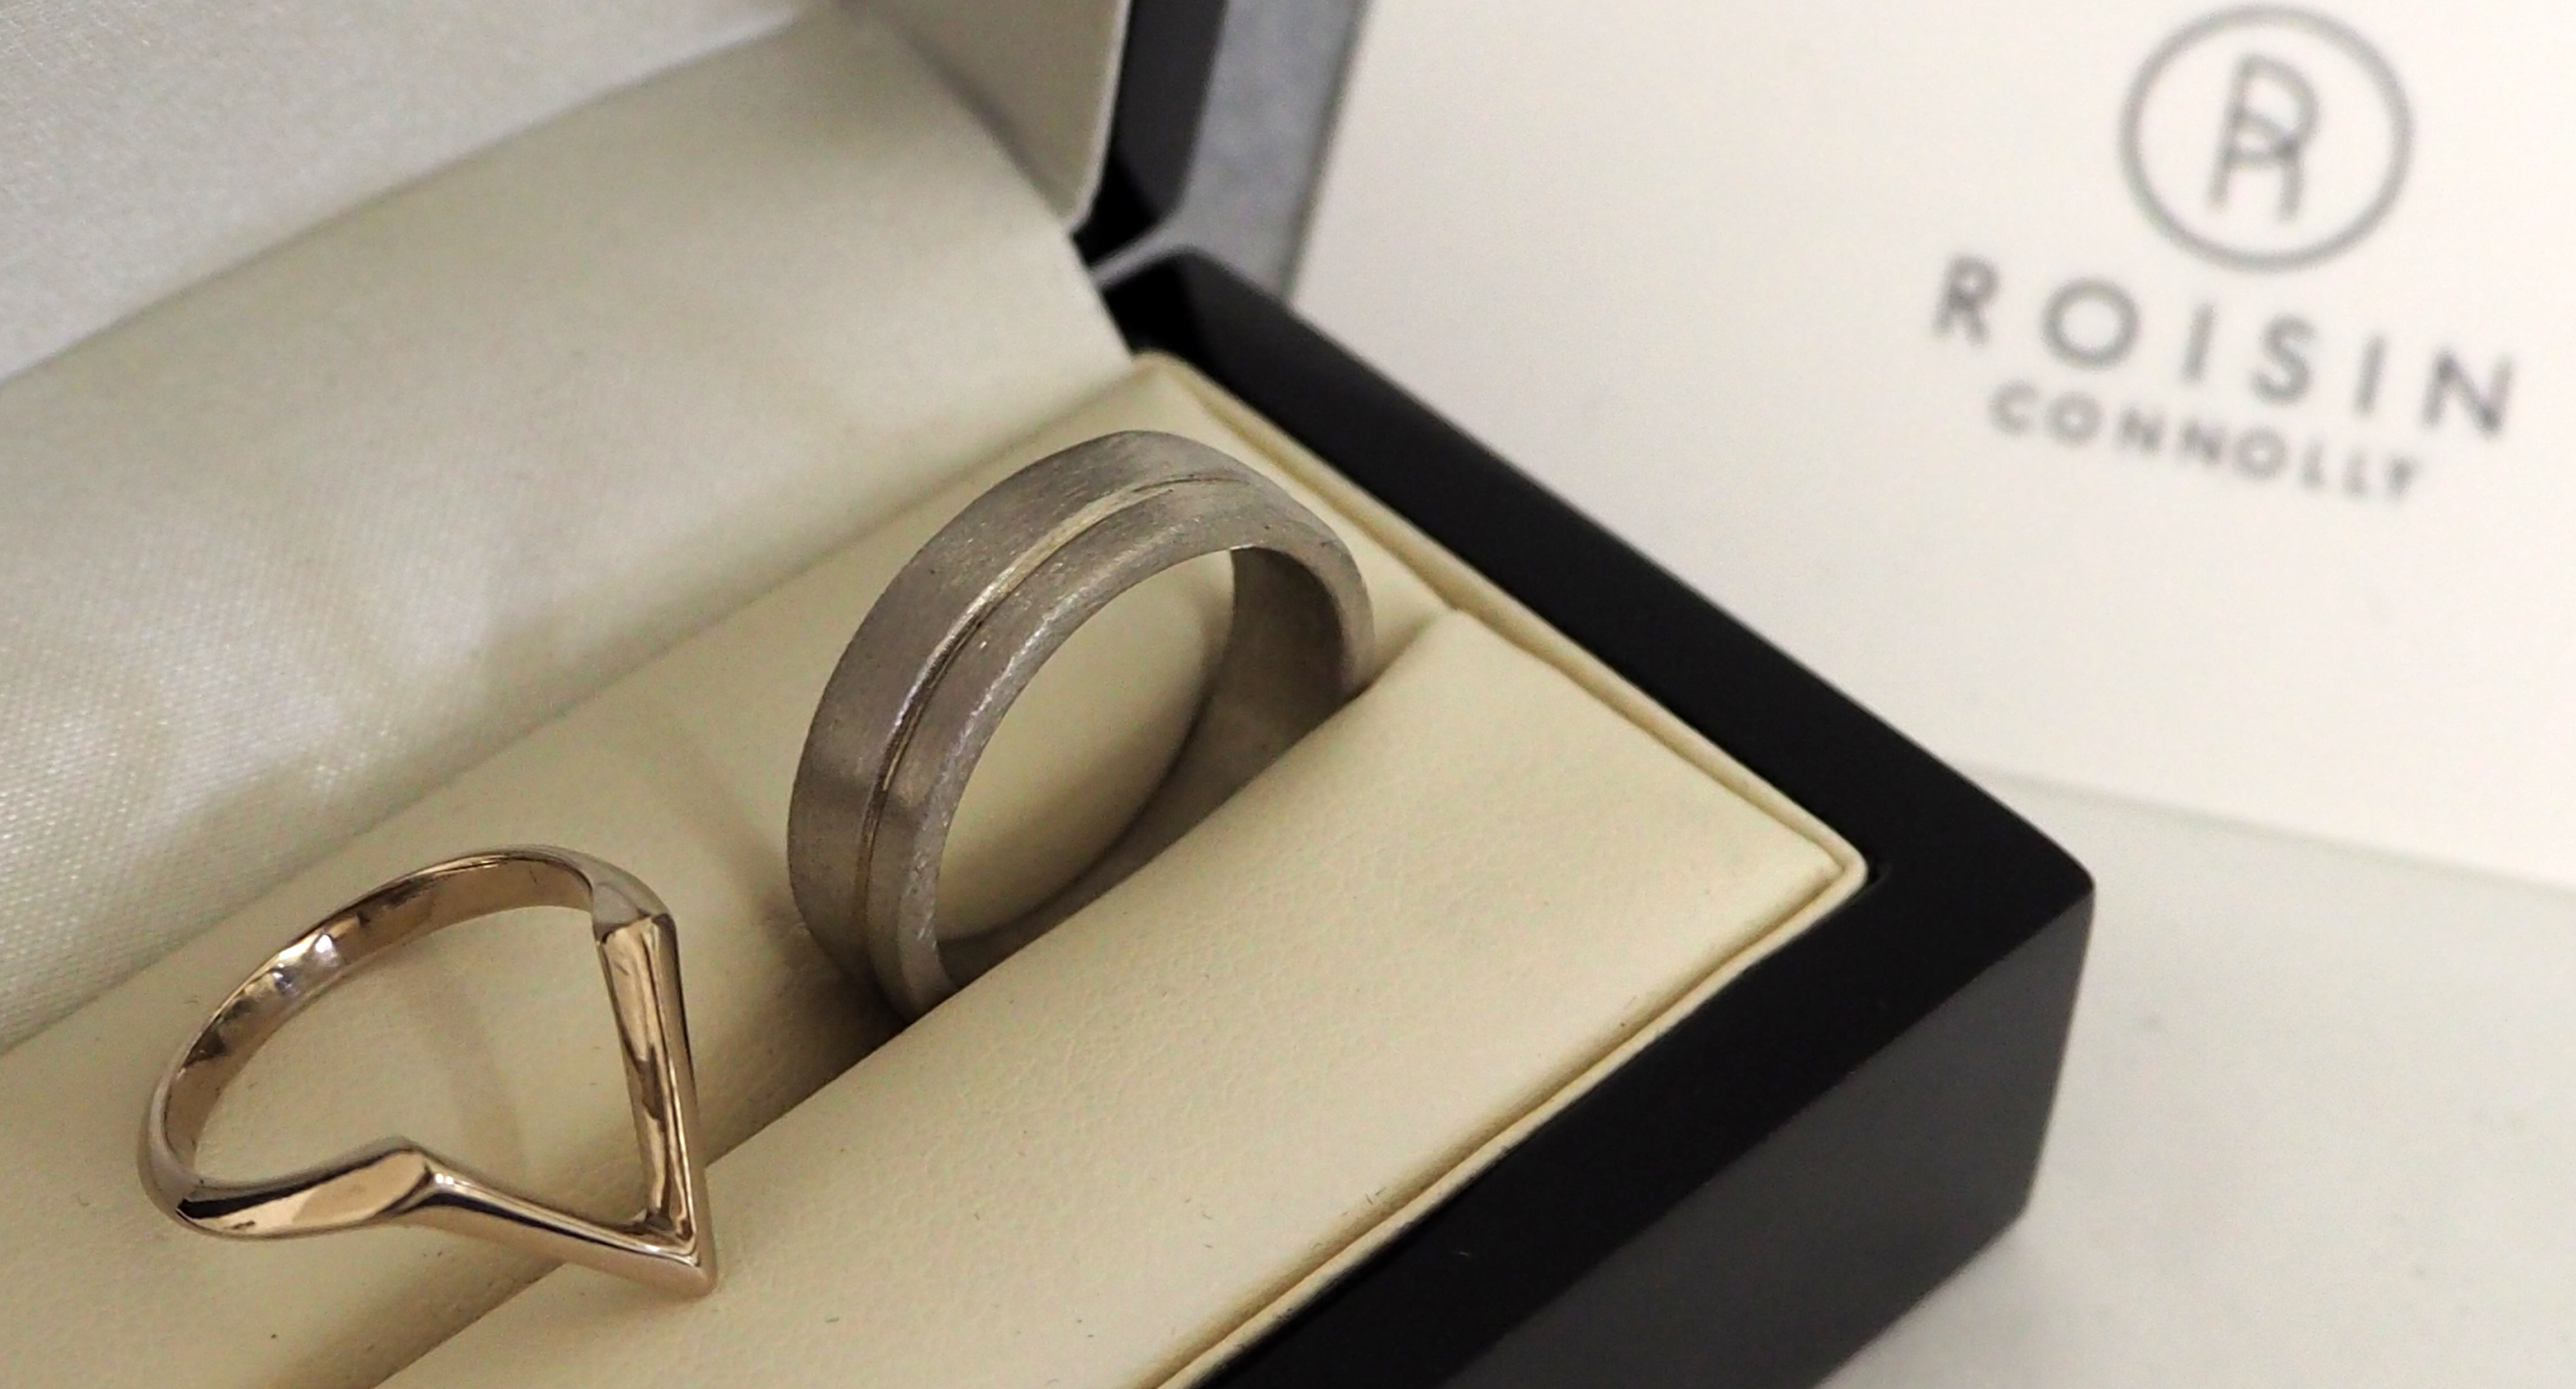 Bespoke Wedding Set, White Gold/Palladium